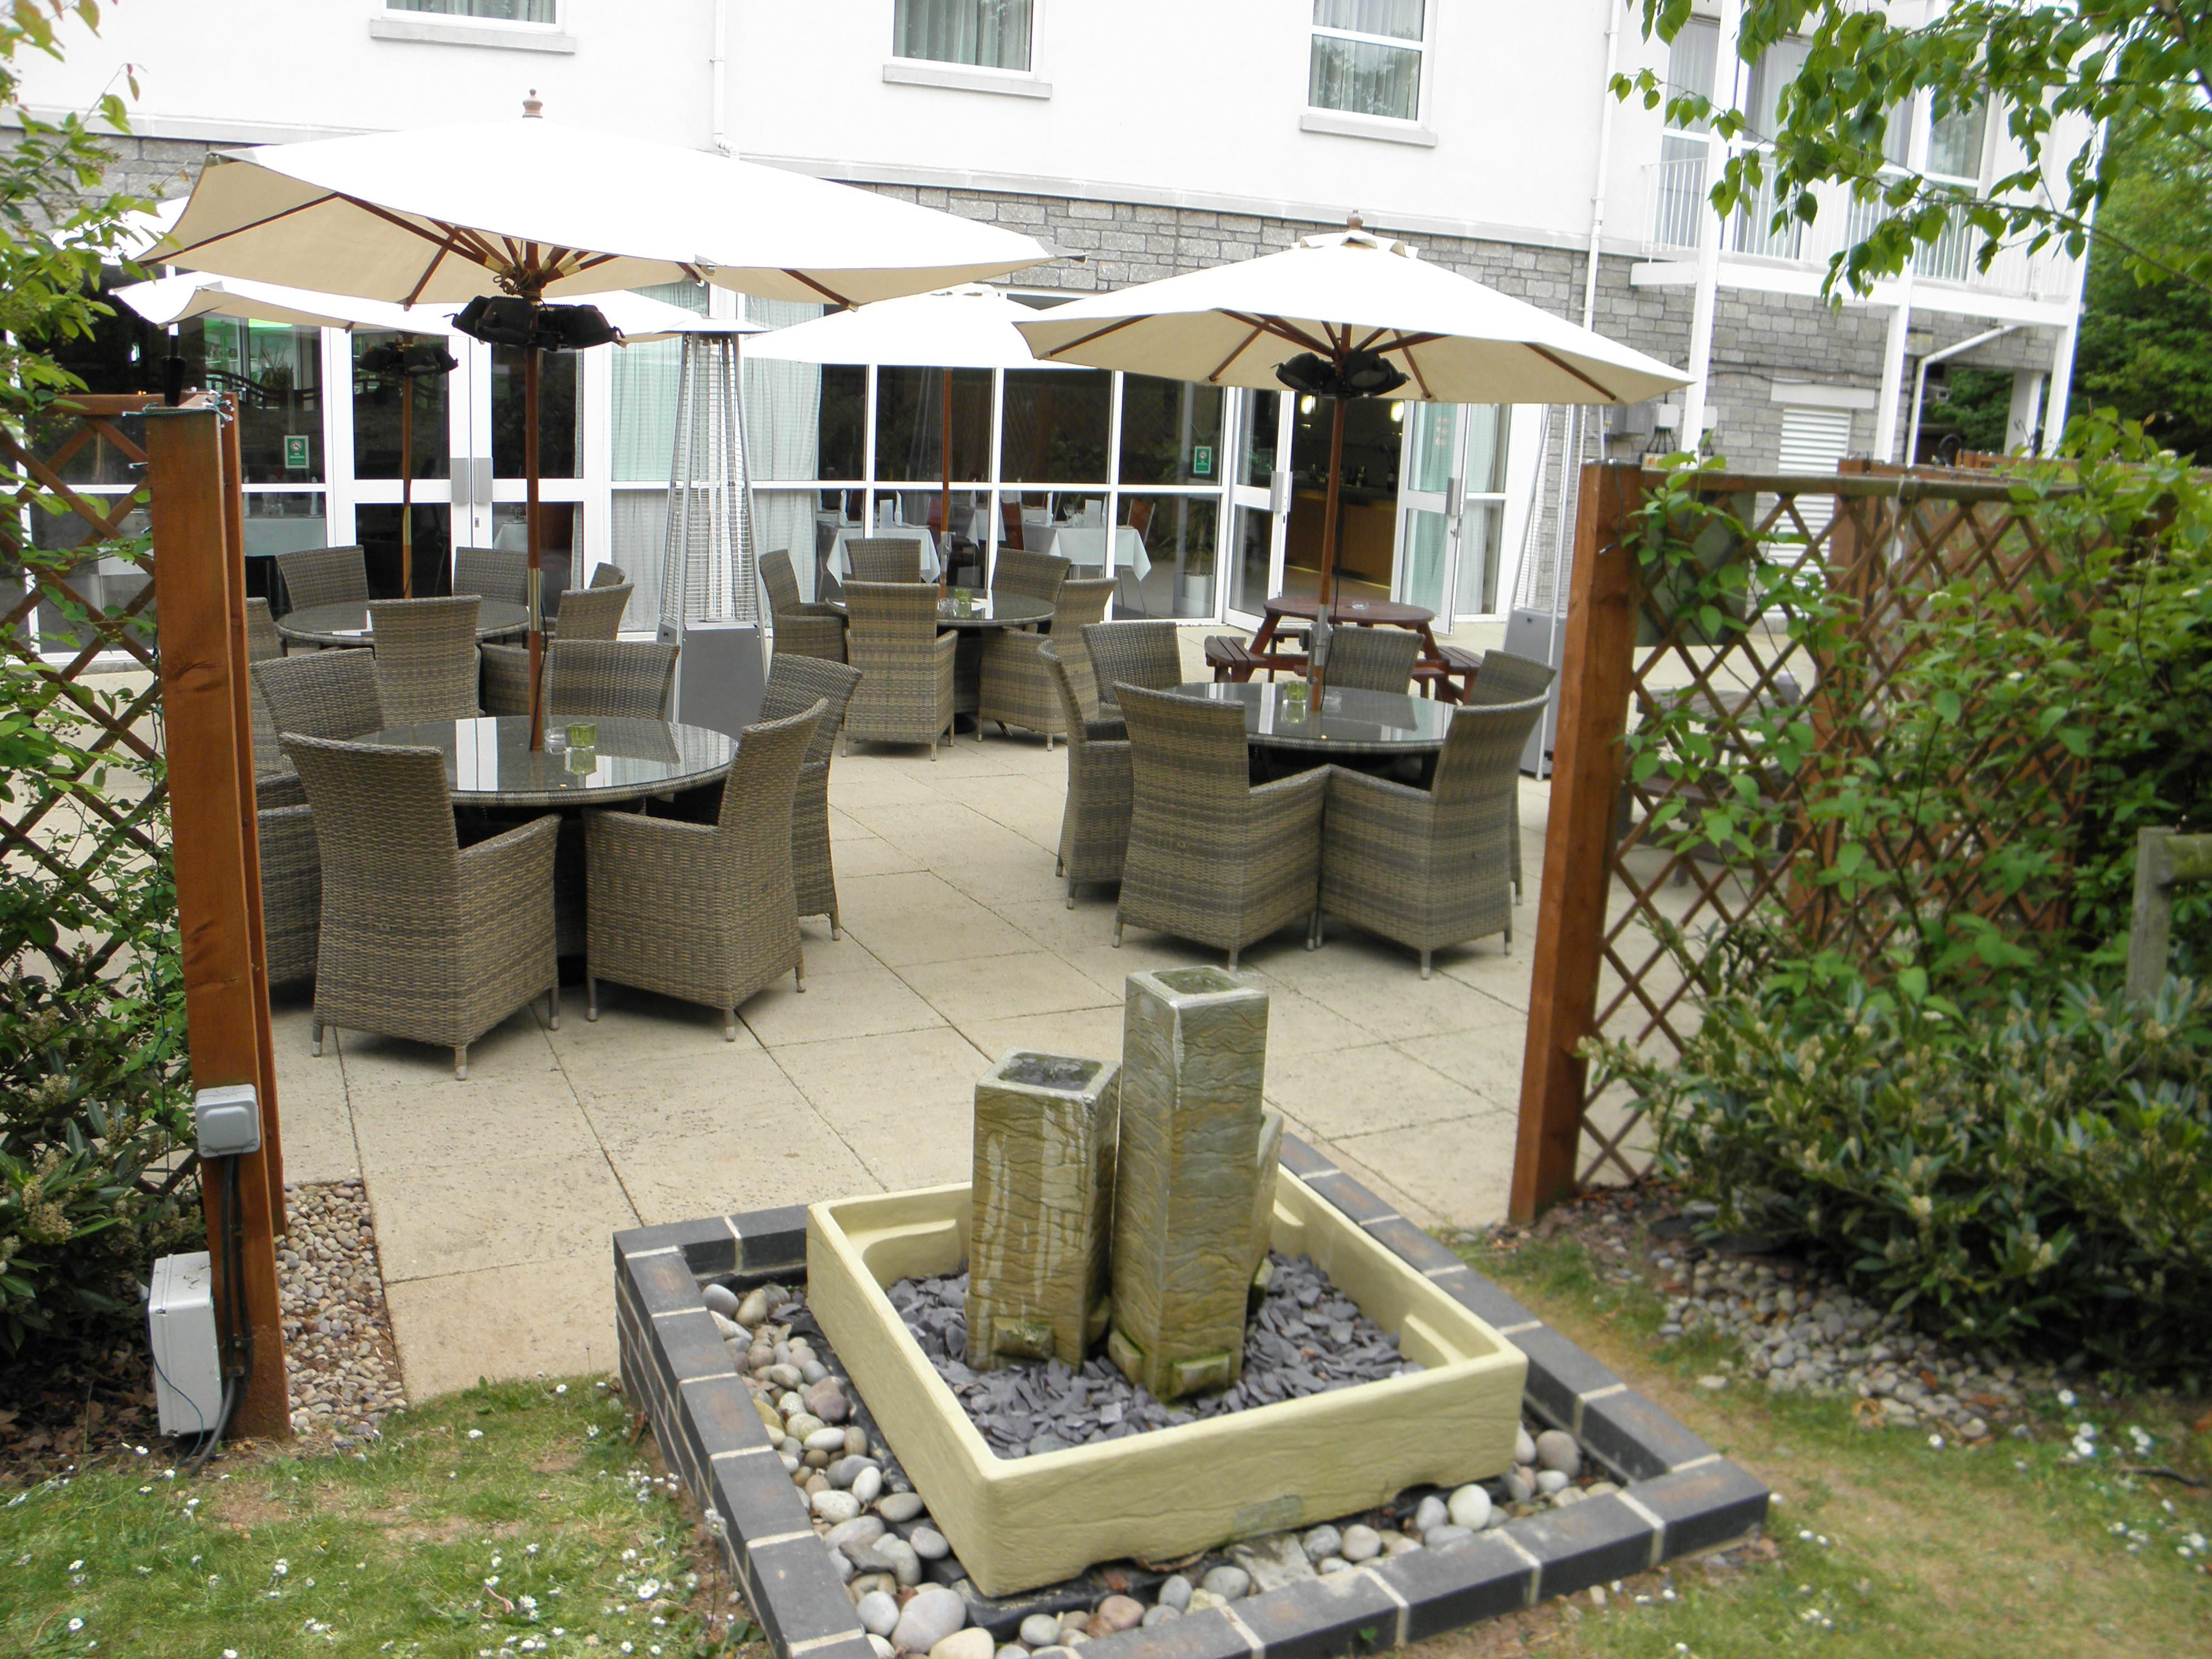 Our patio area perfect to enjoy a glass of wine in the summer.